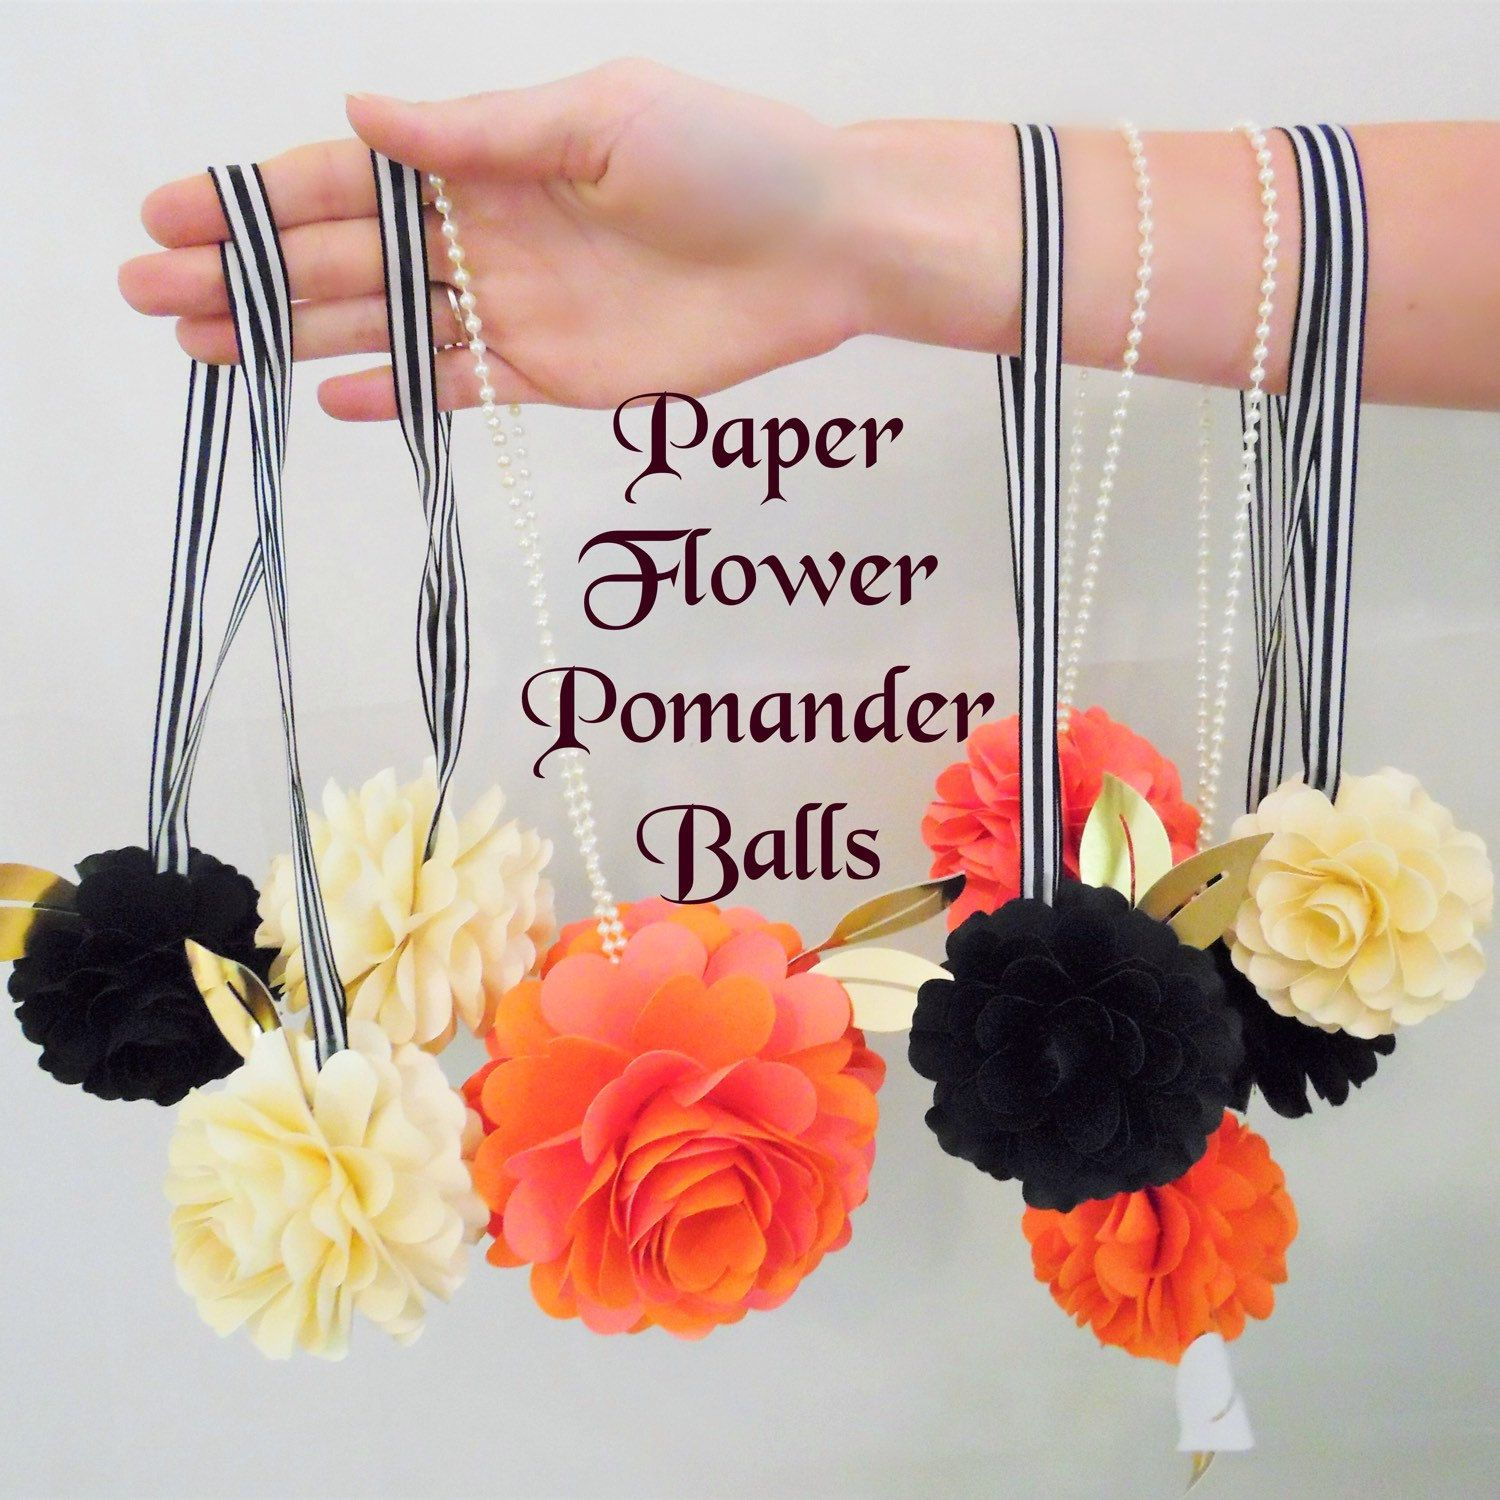 Paper flowers how to make paper flowers flower templates pomander paper flowers are always in bloom who doesnt love adorable decorative flower balls learn to diy for yourself mightylinksfo